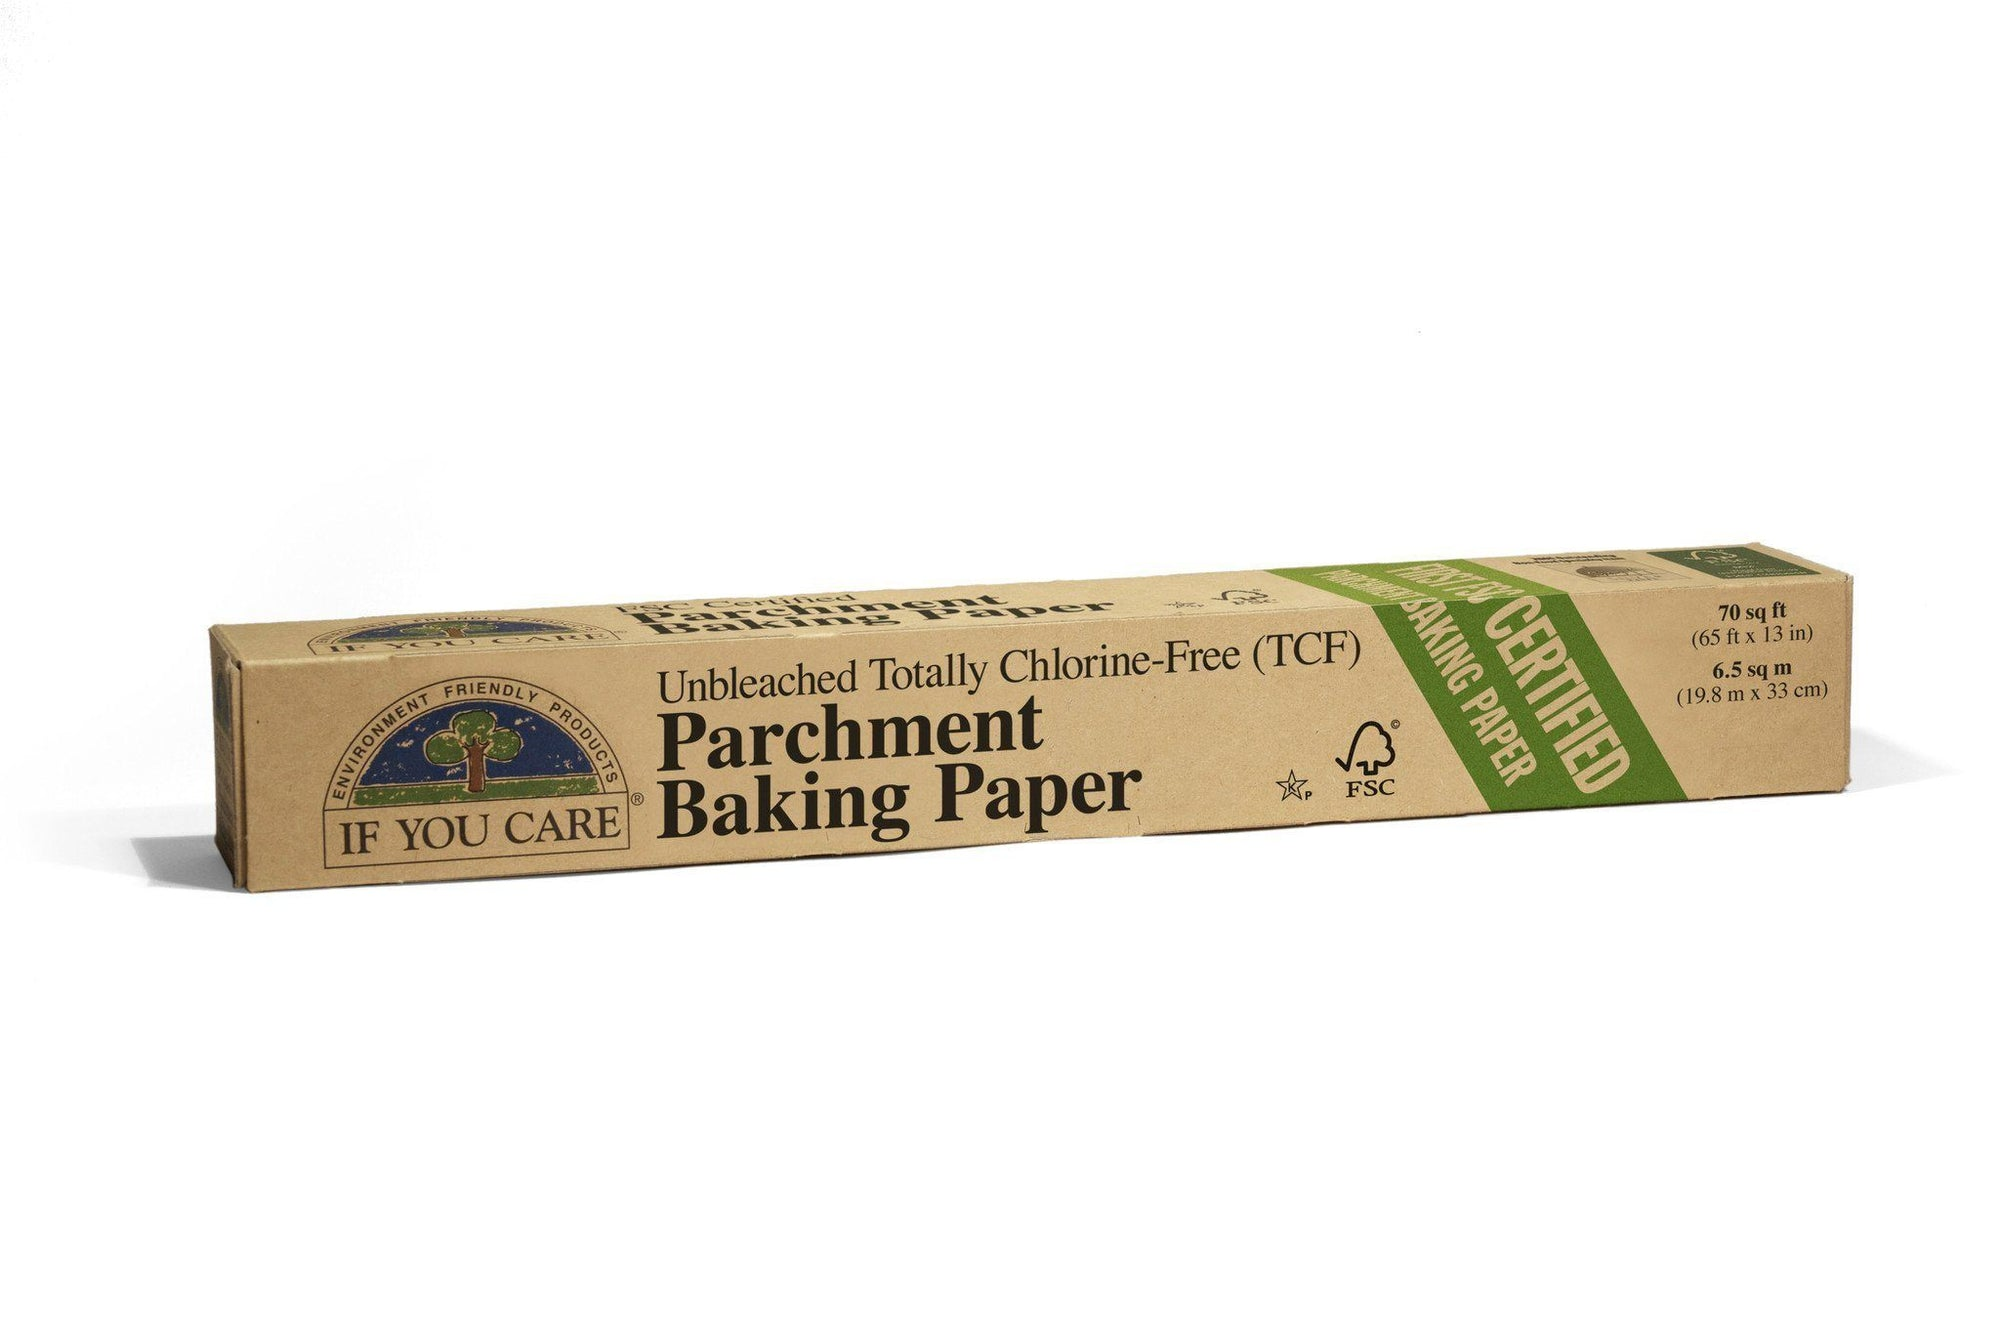 Food & Drink - If You Care - Enviro Friendly - Parchment Paper